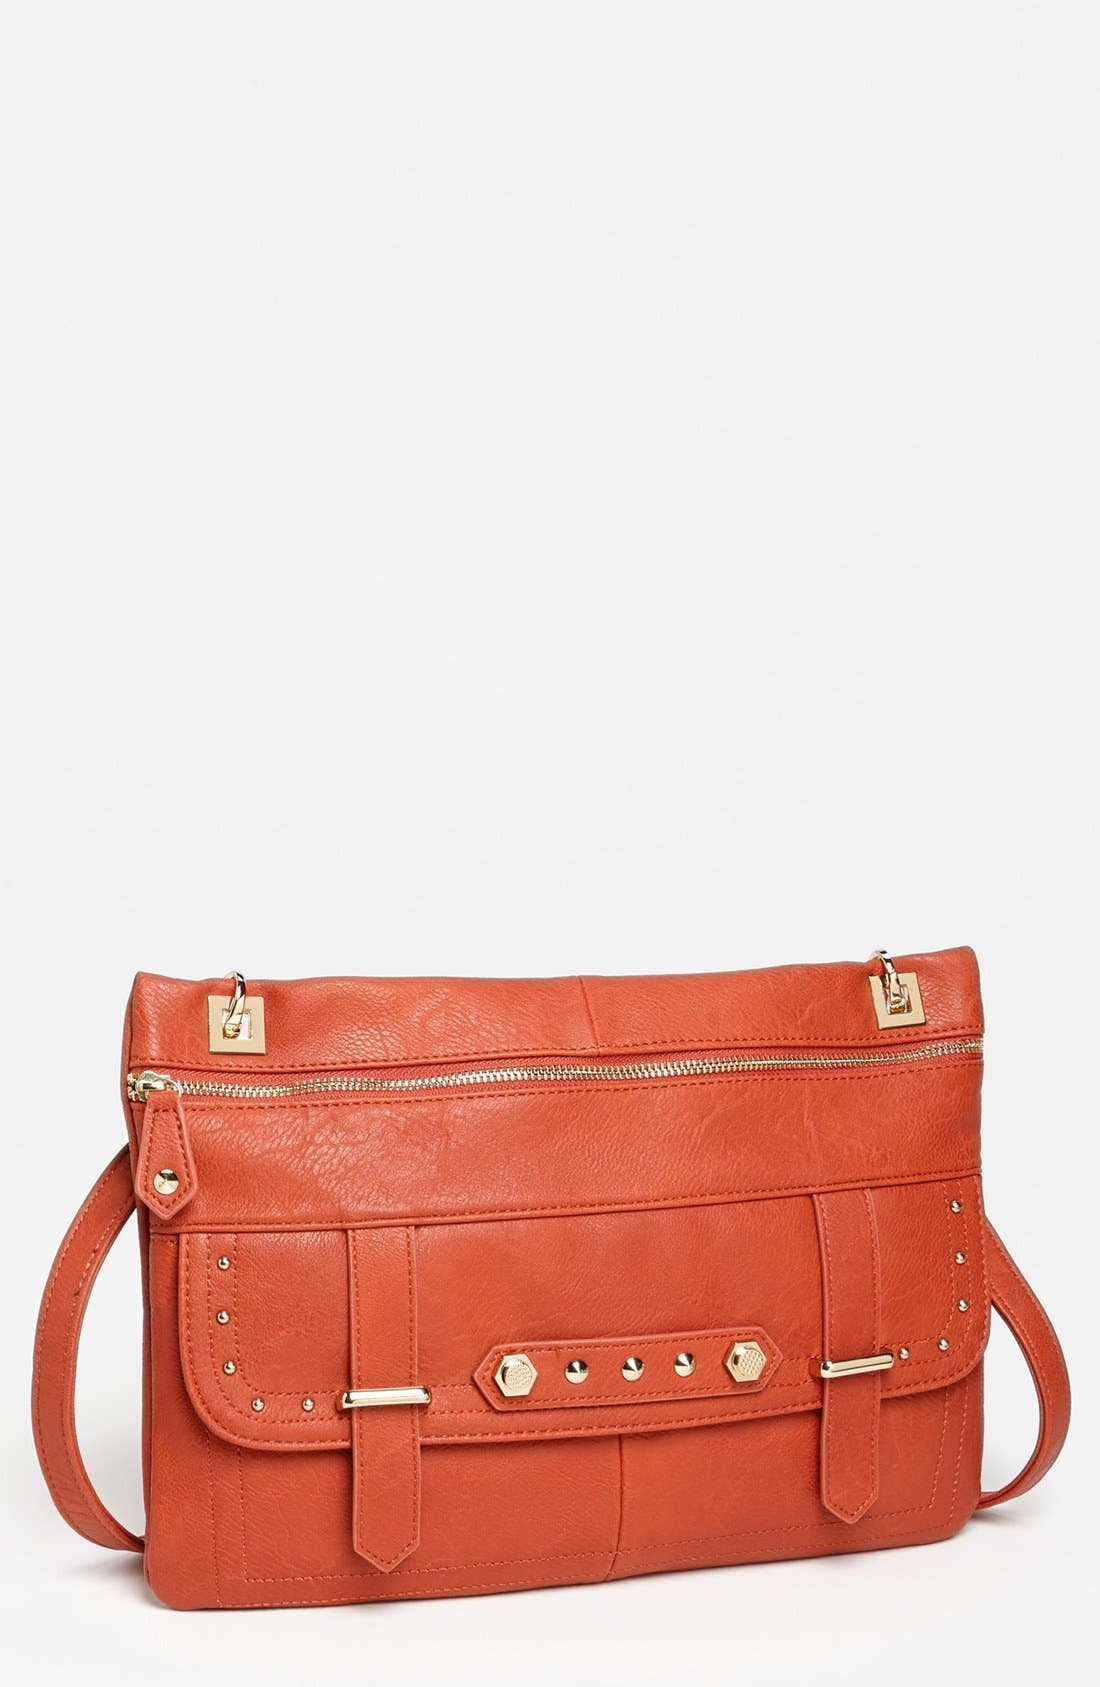 Main Image - Danielle Nicole 'Collette' Shoulder Bag